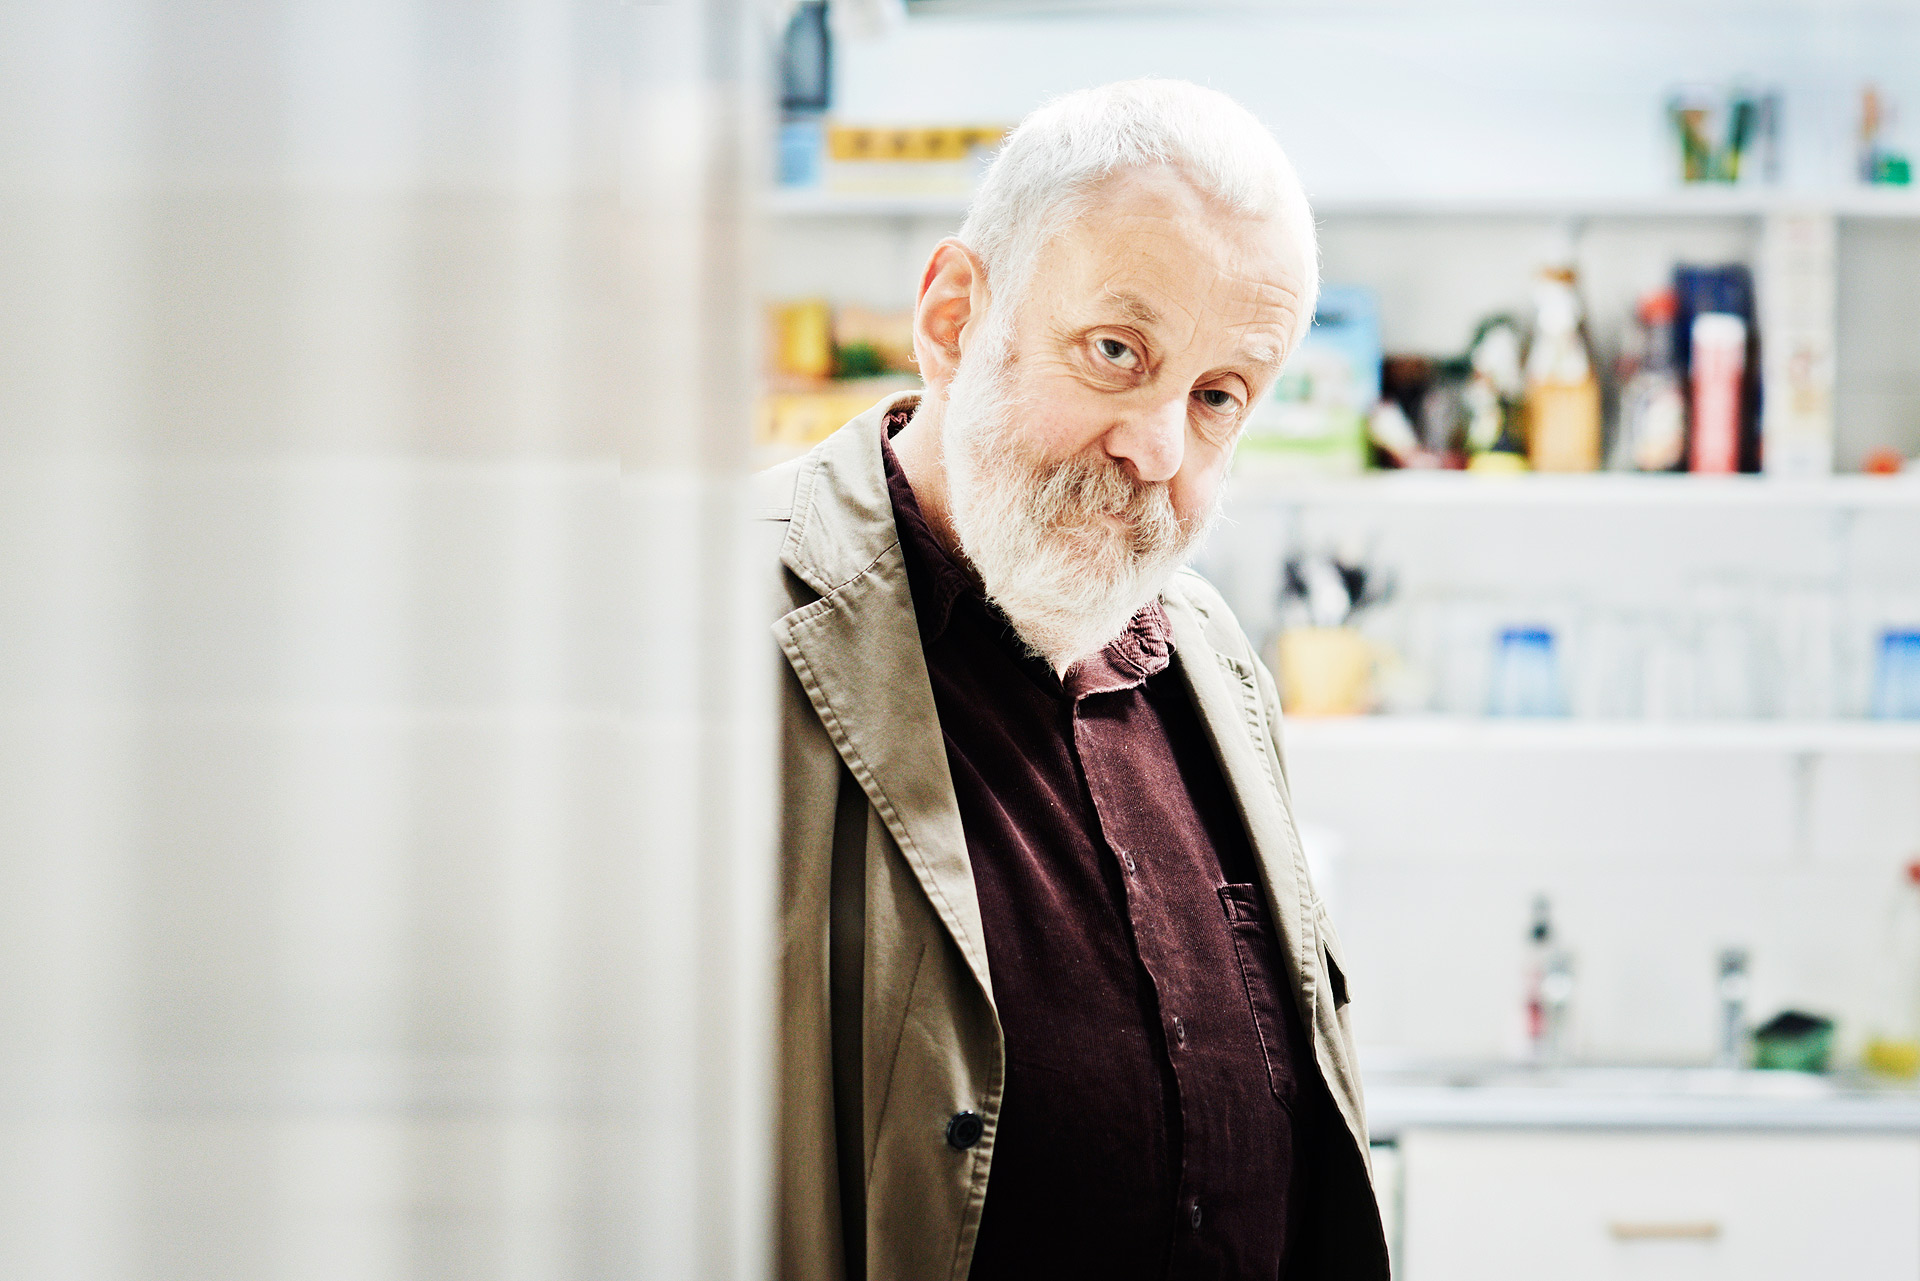 Ben_Portrait_MikeLeigh